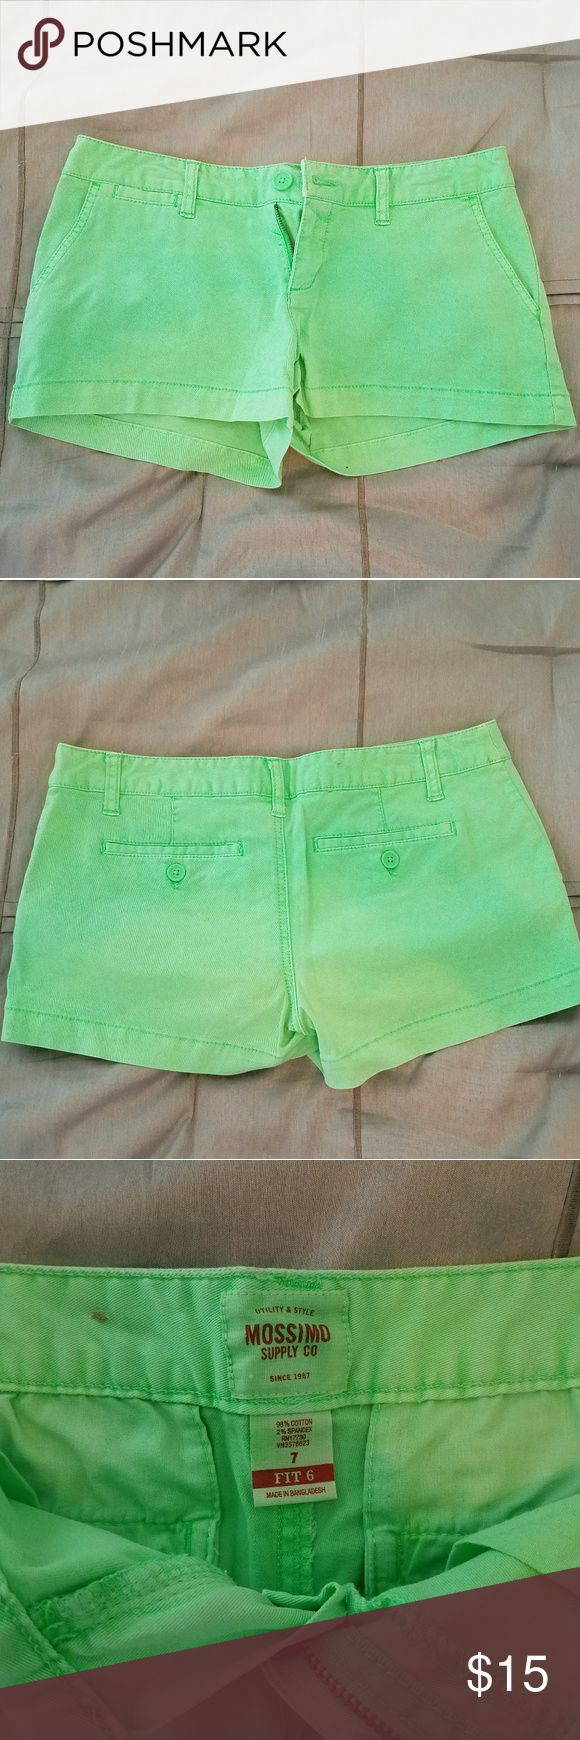 Mossimo neon shorts These Mossimo shorts are a neon green. Mossimo Supply Co Shorts